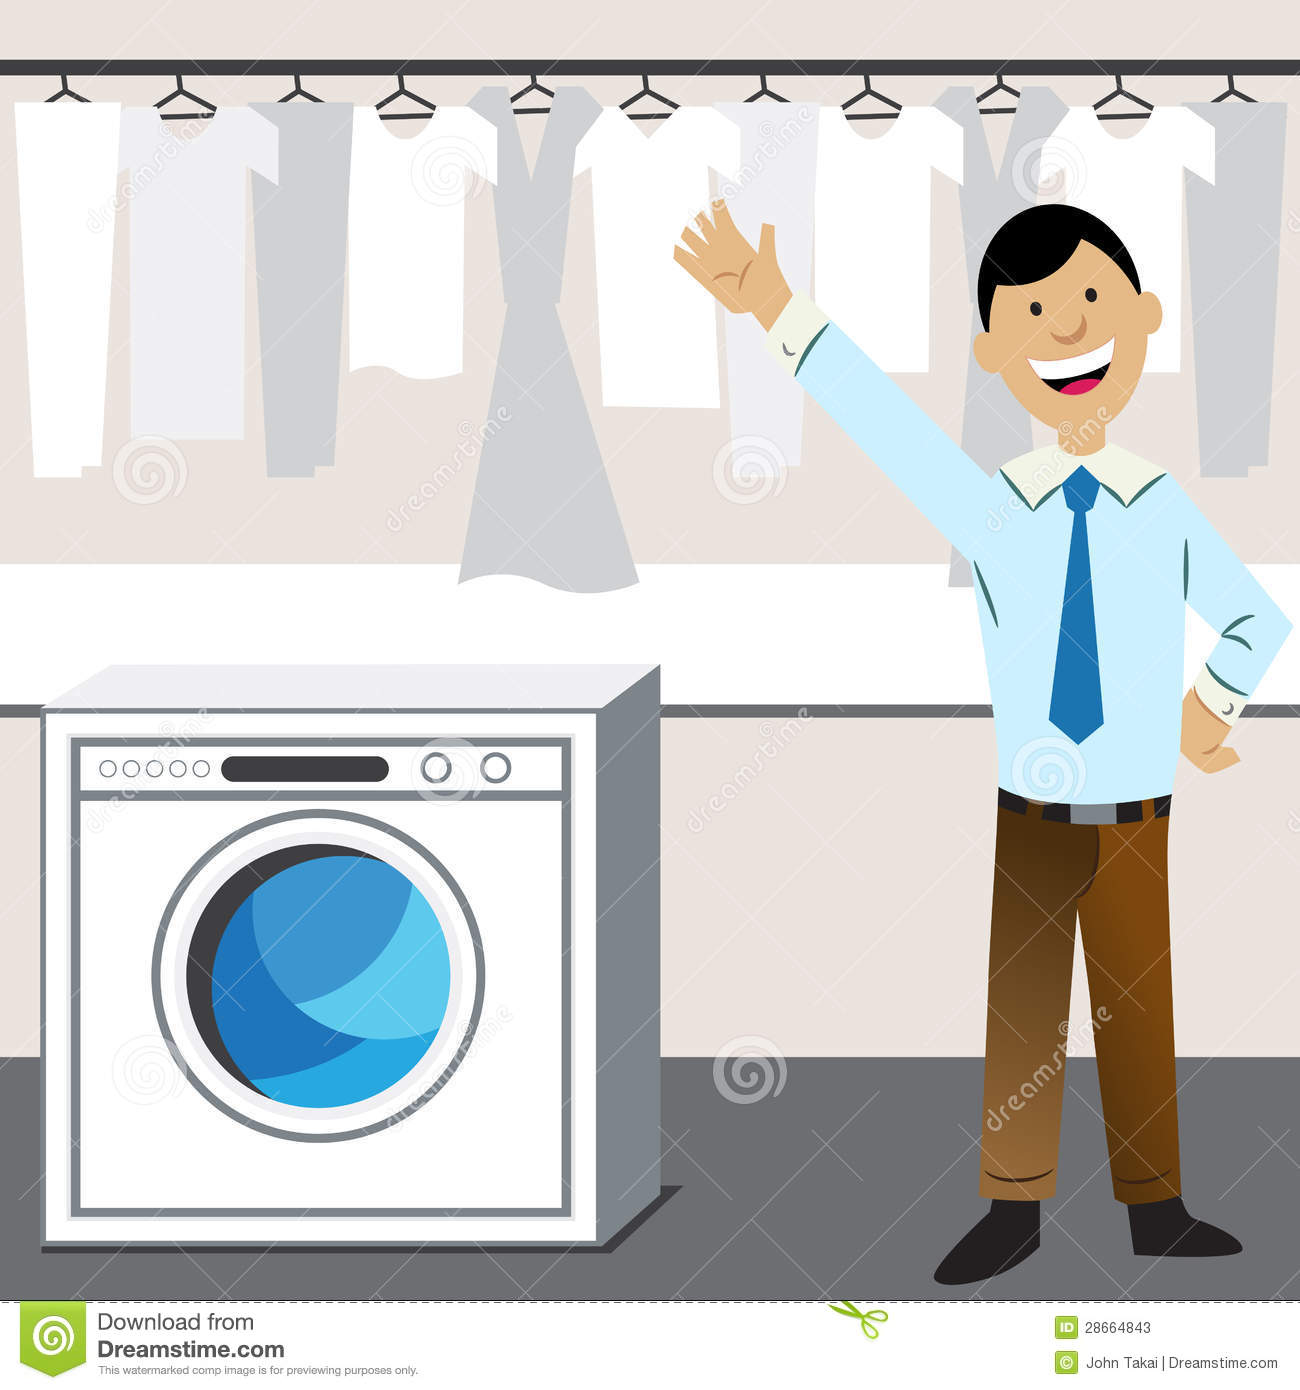 Small scale business ideas in india list, laundry business plan ...